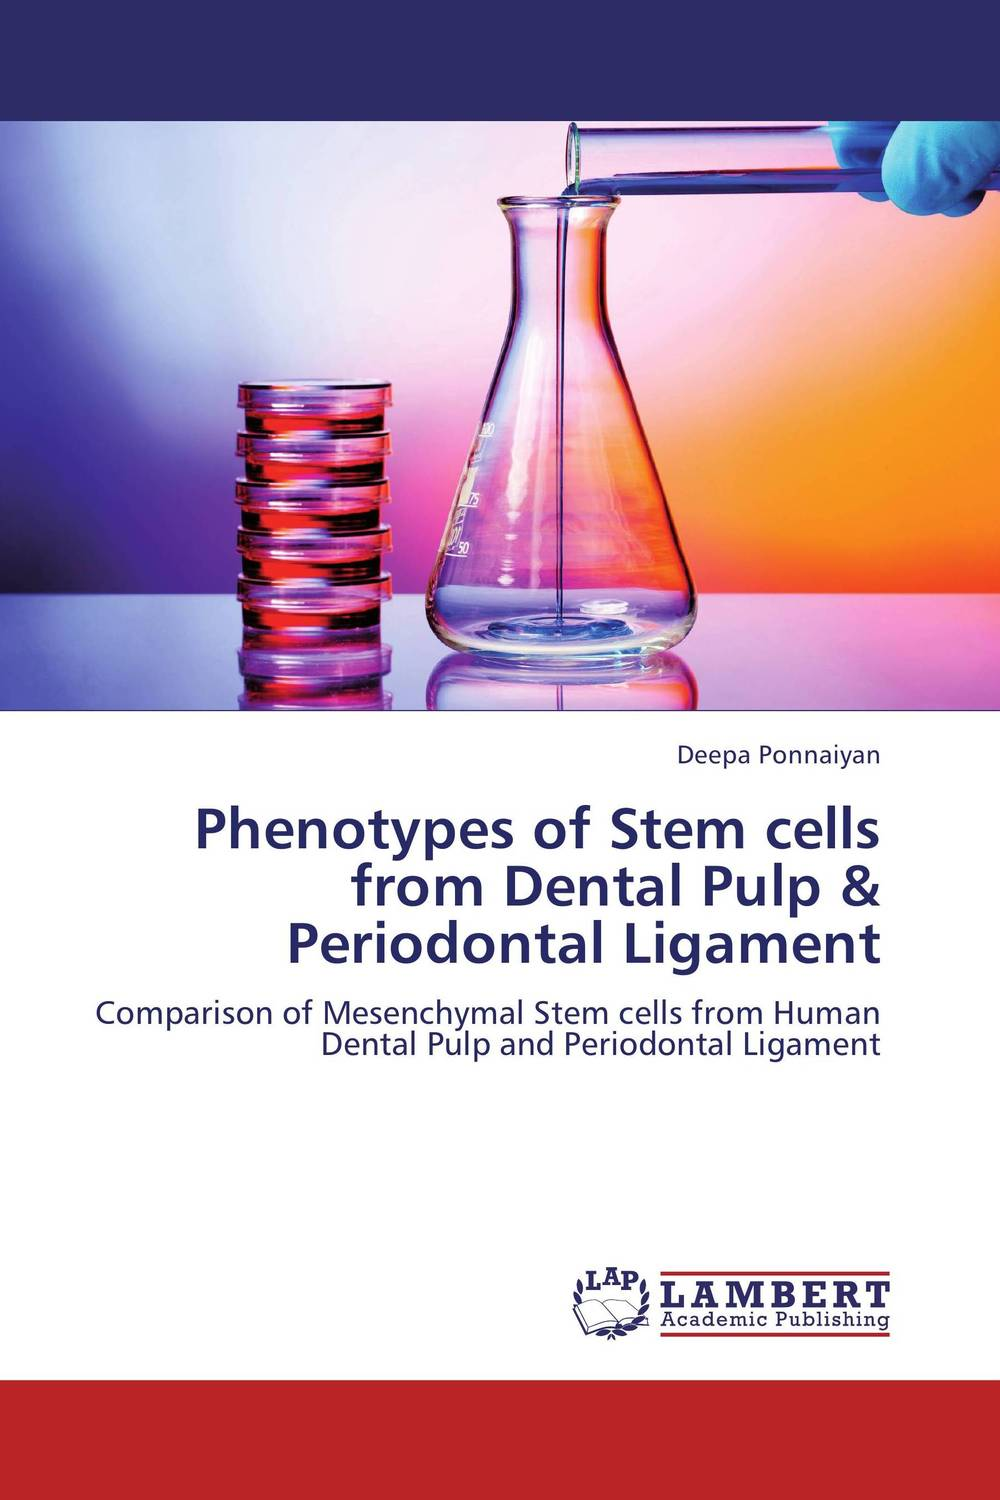 Phenotypes of Stem cells from Dental Pulp & Periodontal Ligament stem bromelain in silico analysis for stability and modification